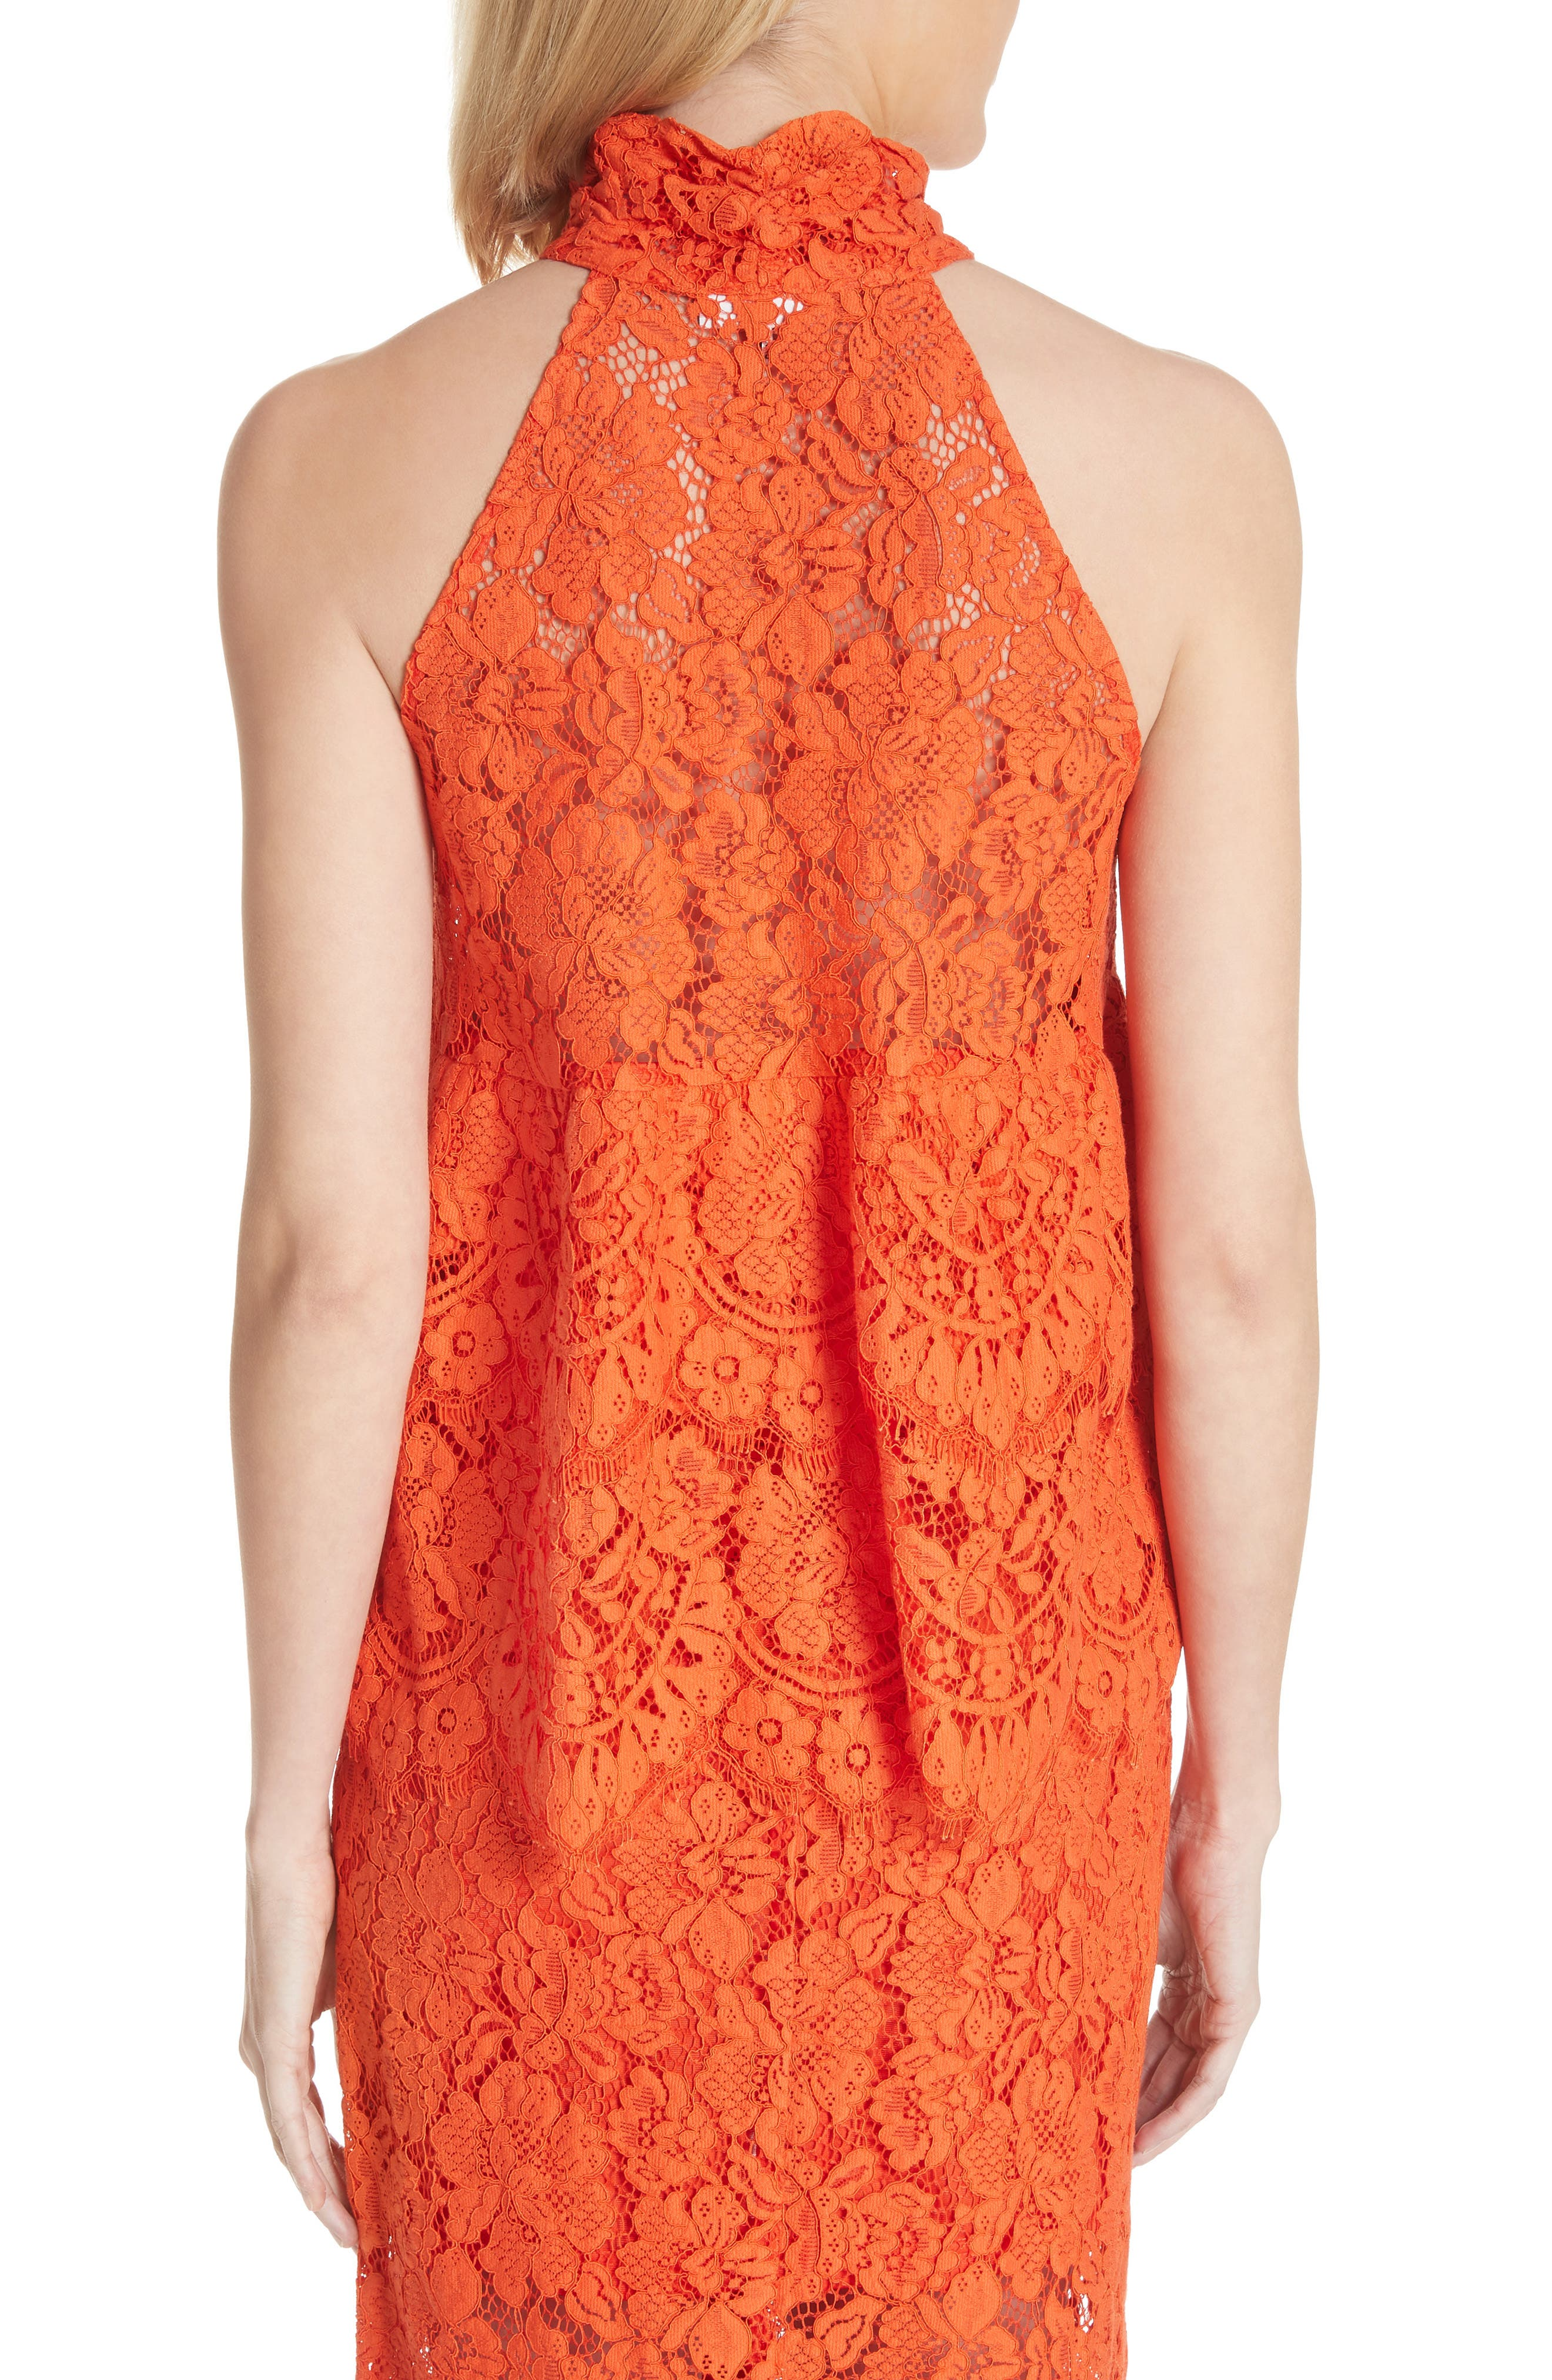 Jerome Lace Top,                             Alternate thumbnail 2, color,                             BIG APPLE RED